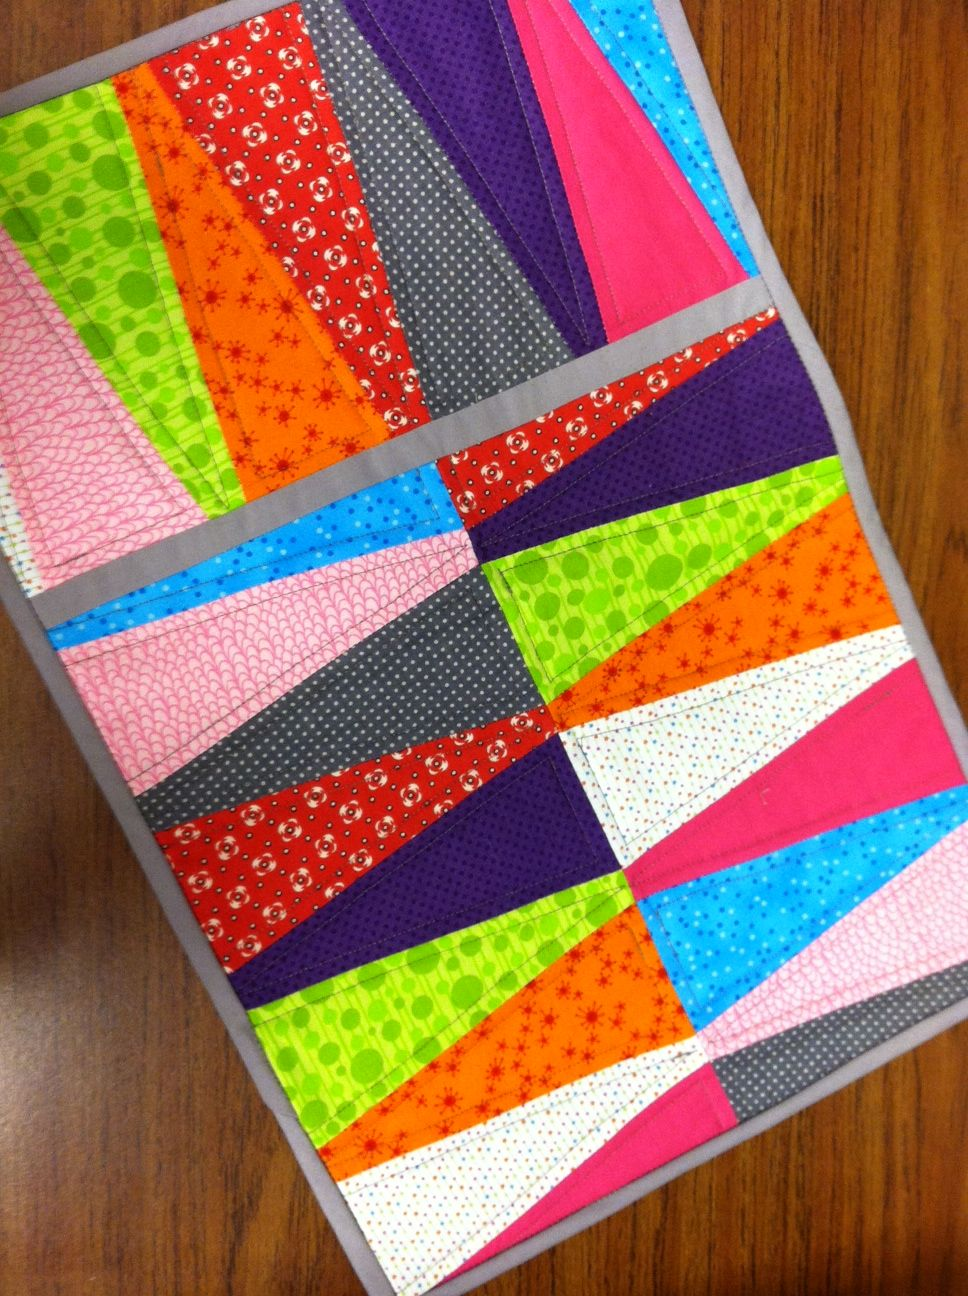 Quilting 201 class at Jo-Ann | Sew a colorful placemat at ...